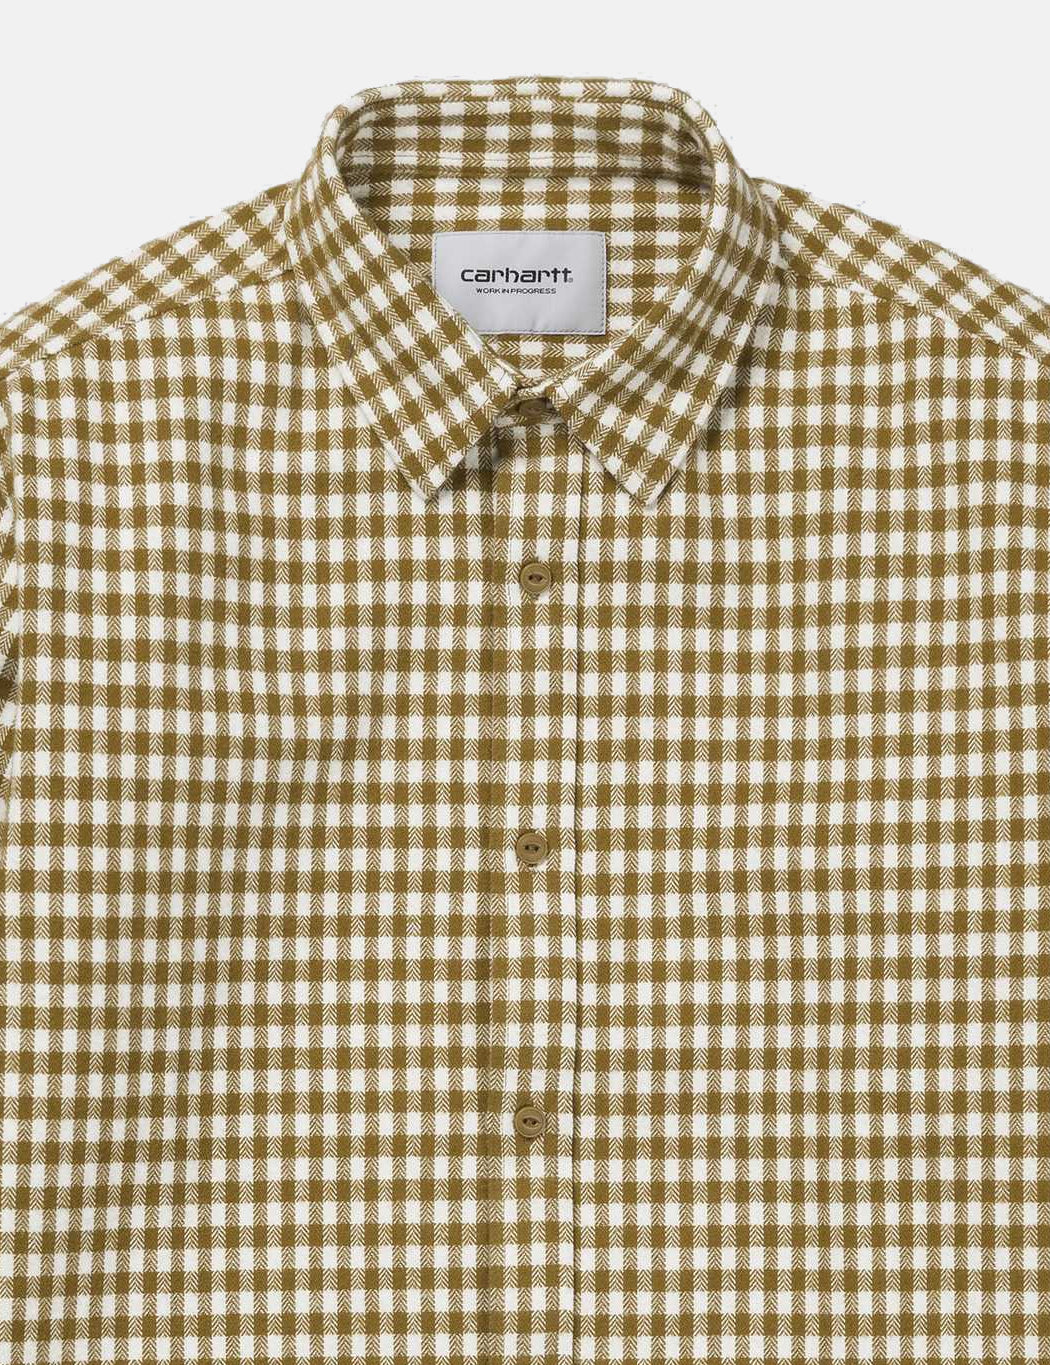 Carhartt Long Sleeve Stawell Check Shirt - Hamilton Brown/White